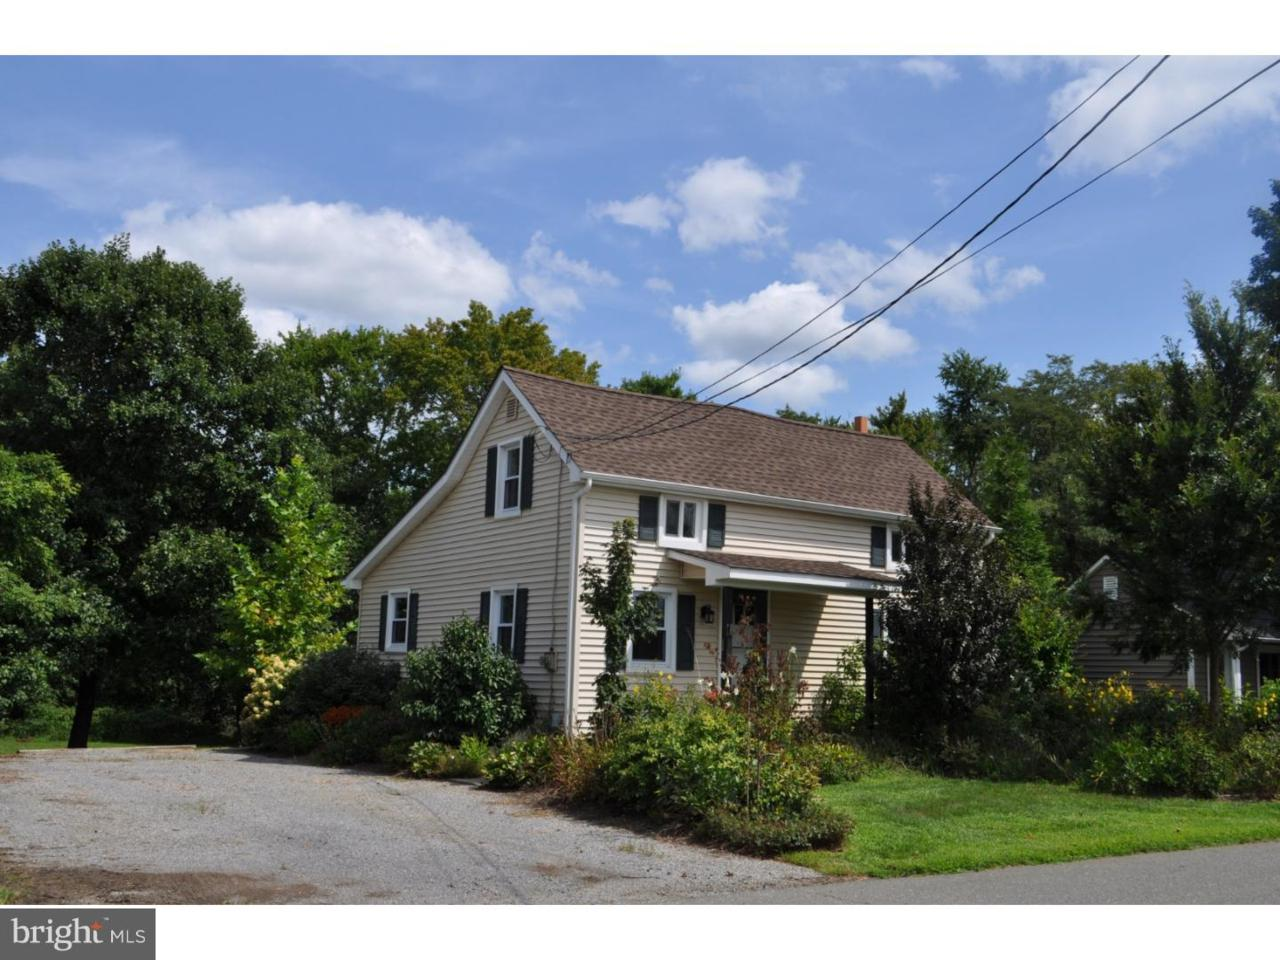 173 Hill Road - Photo 1